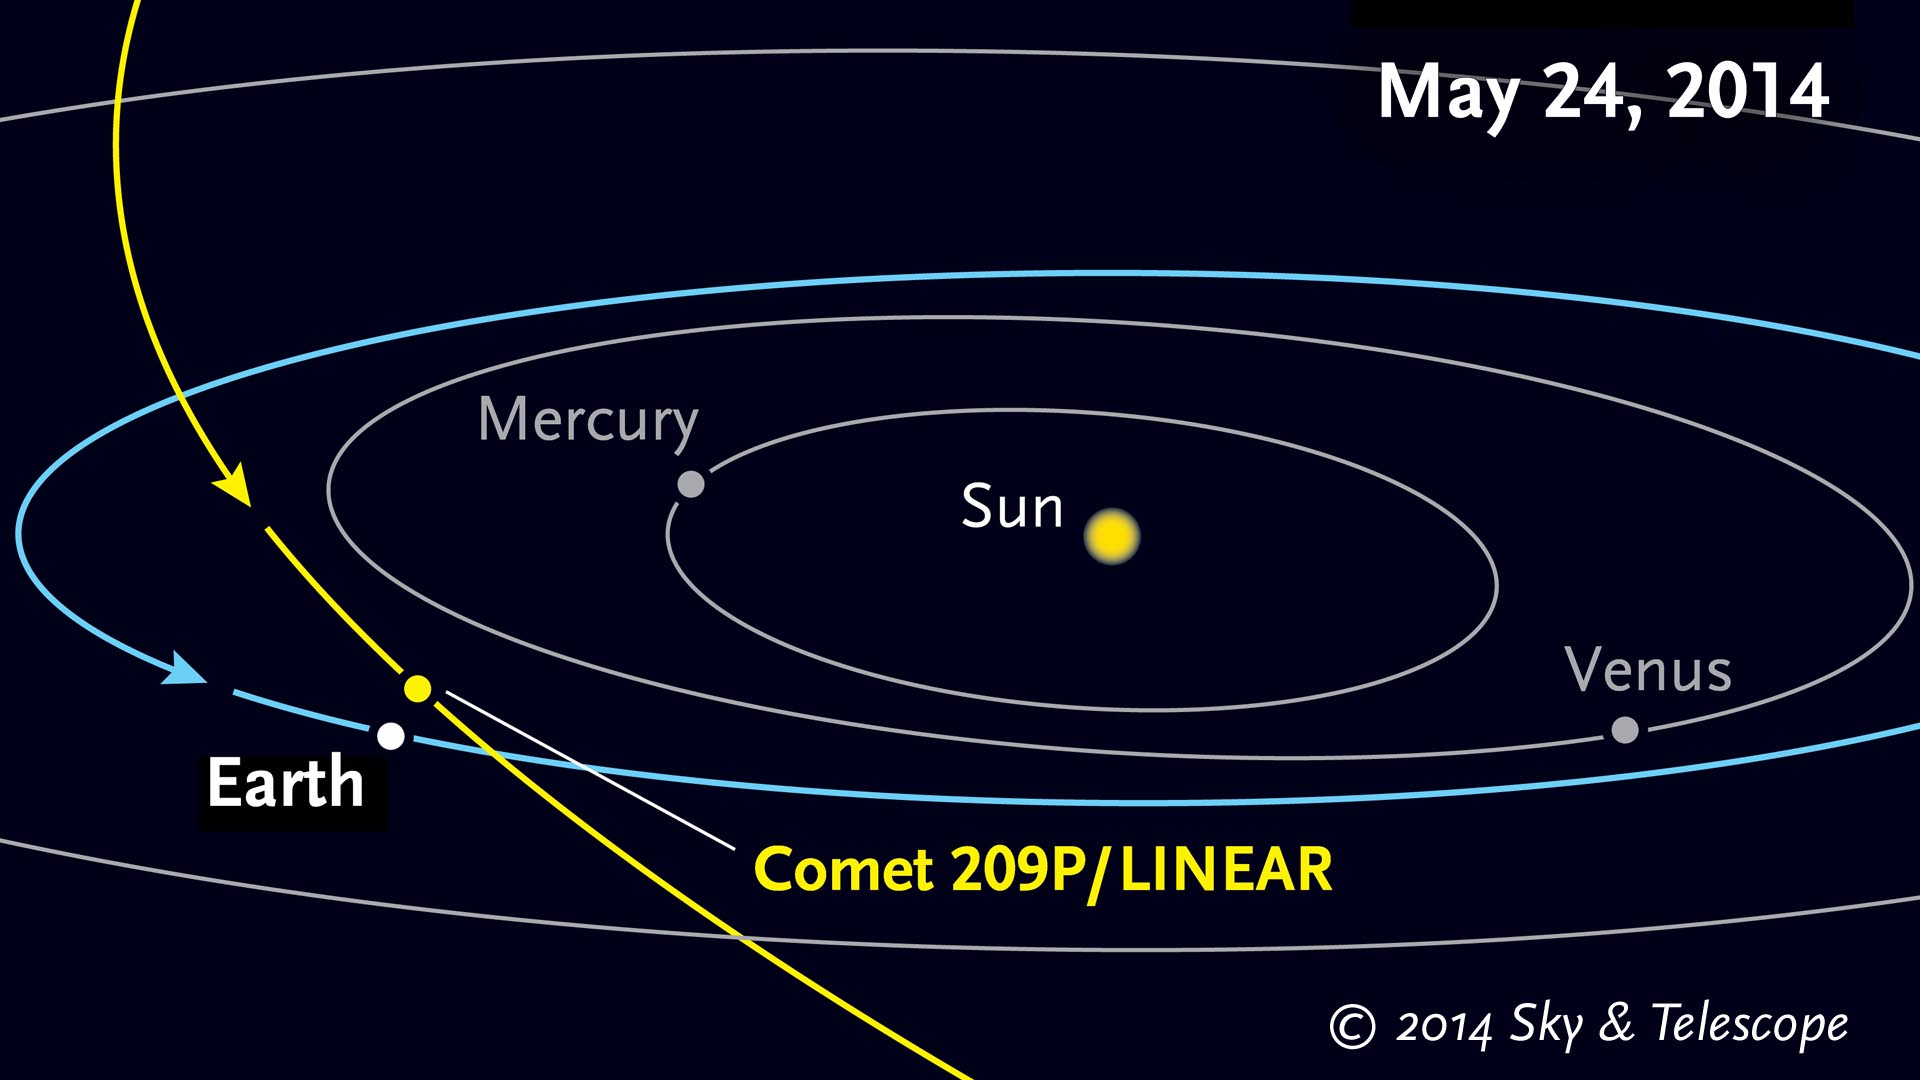 Close visit from Comet 209P/LINEAR